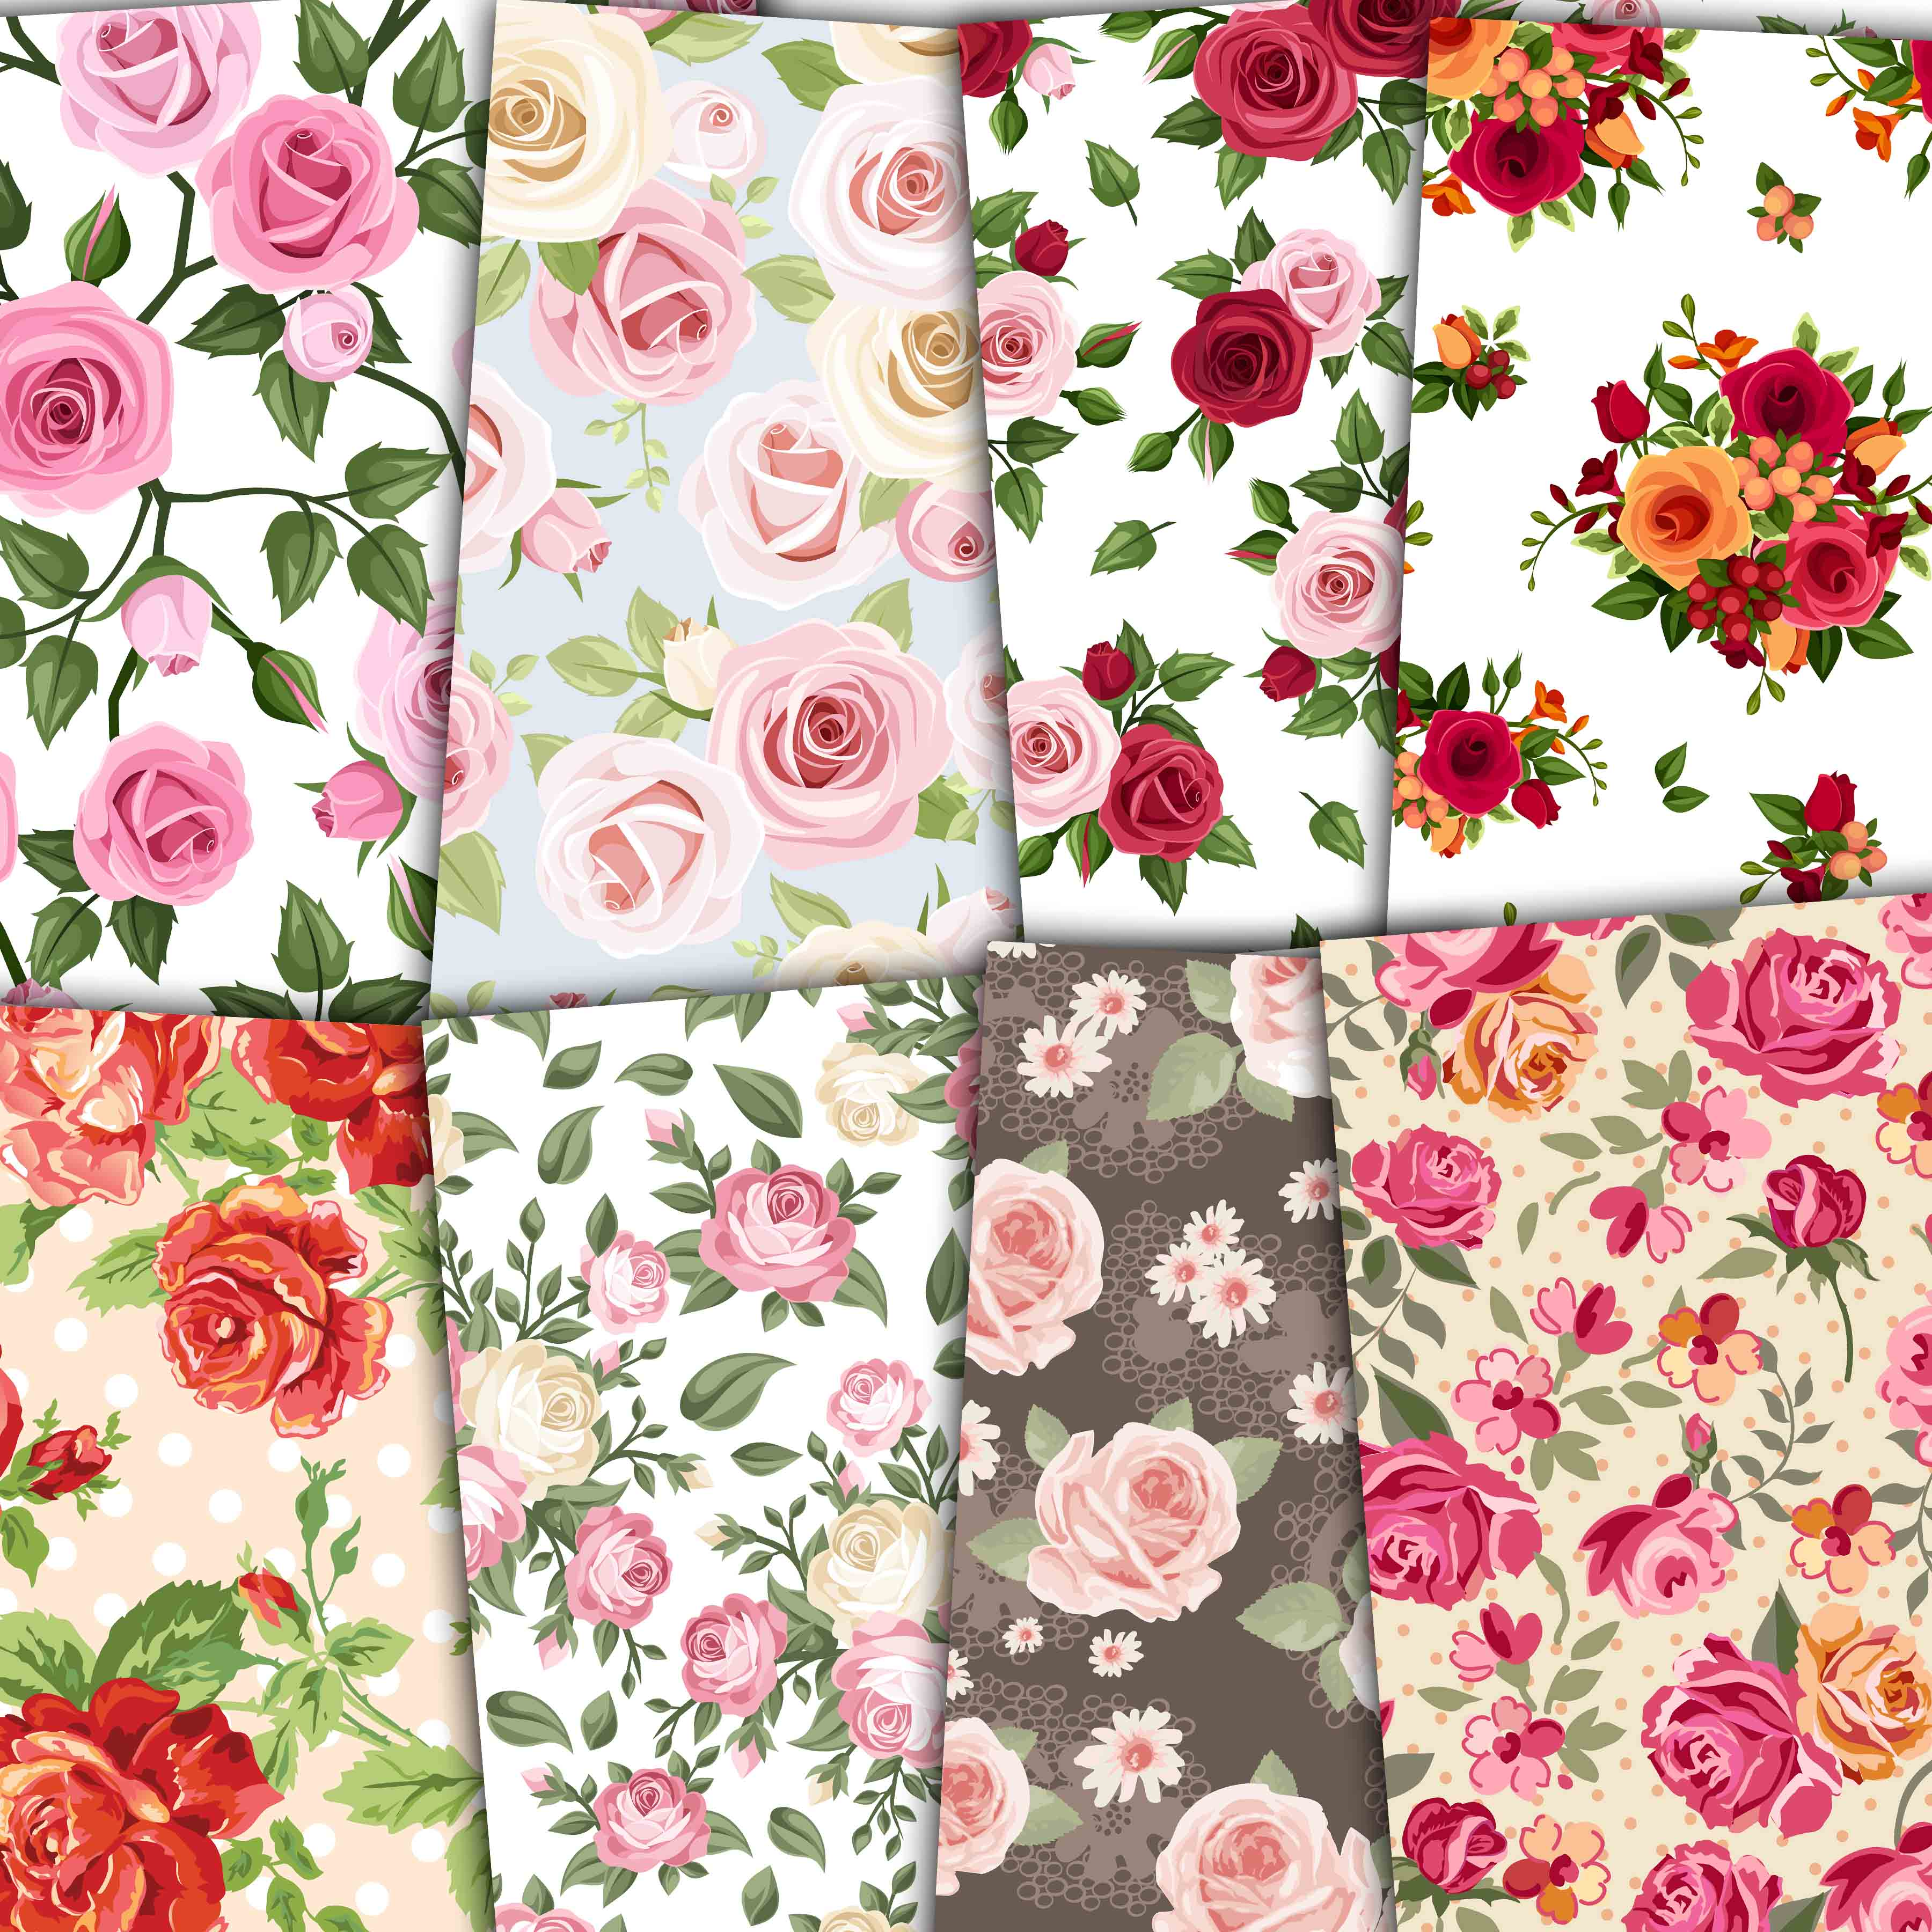 Print on Demand: Floral Digital Paper Pack Graphic Backgrounds By retrowalldecor - Image 3